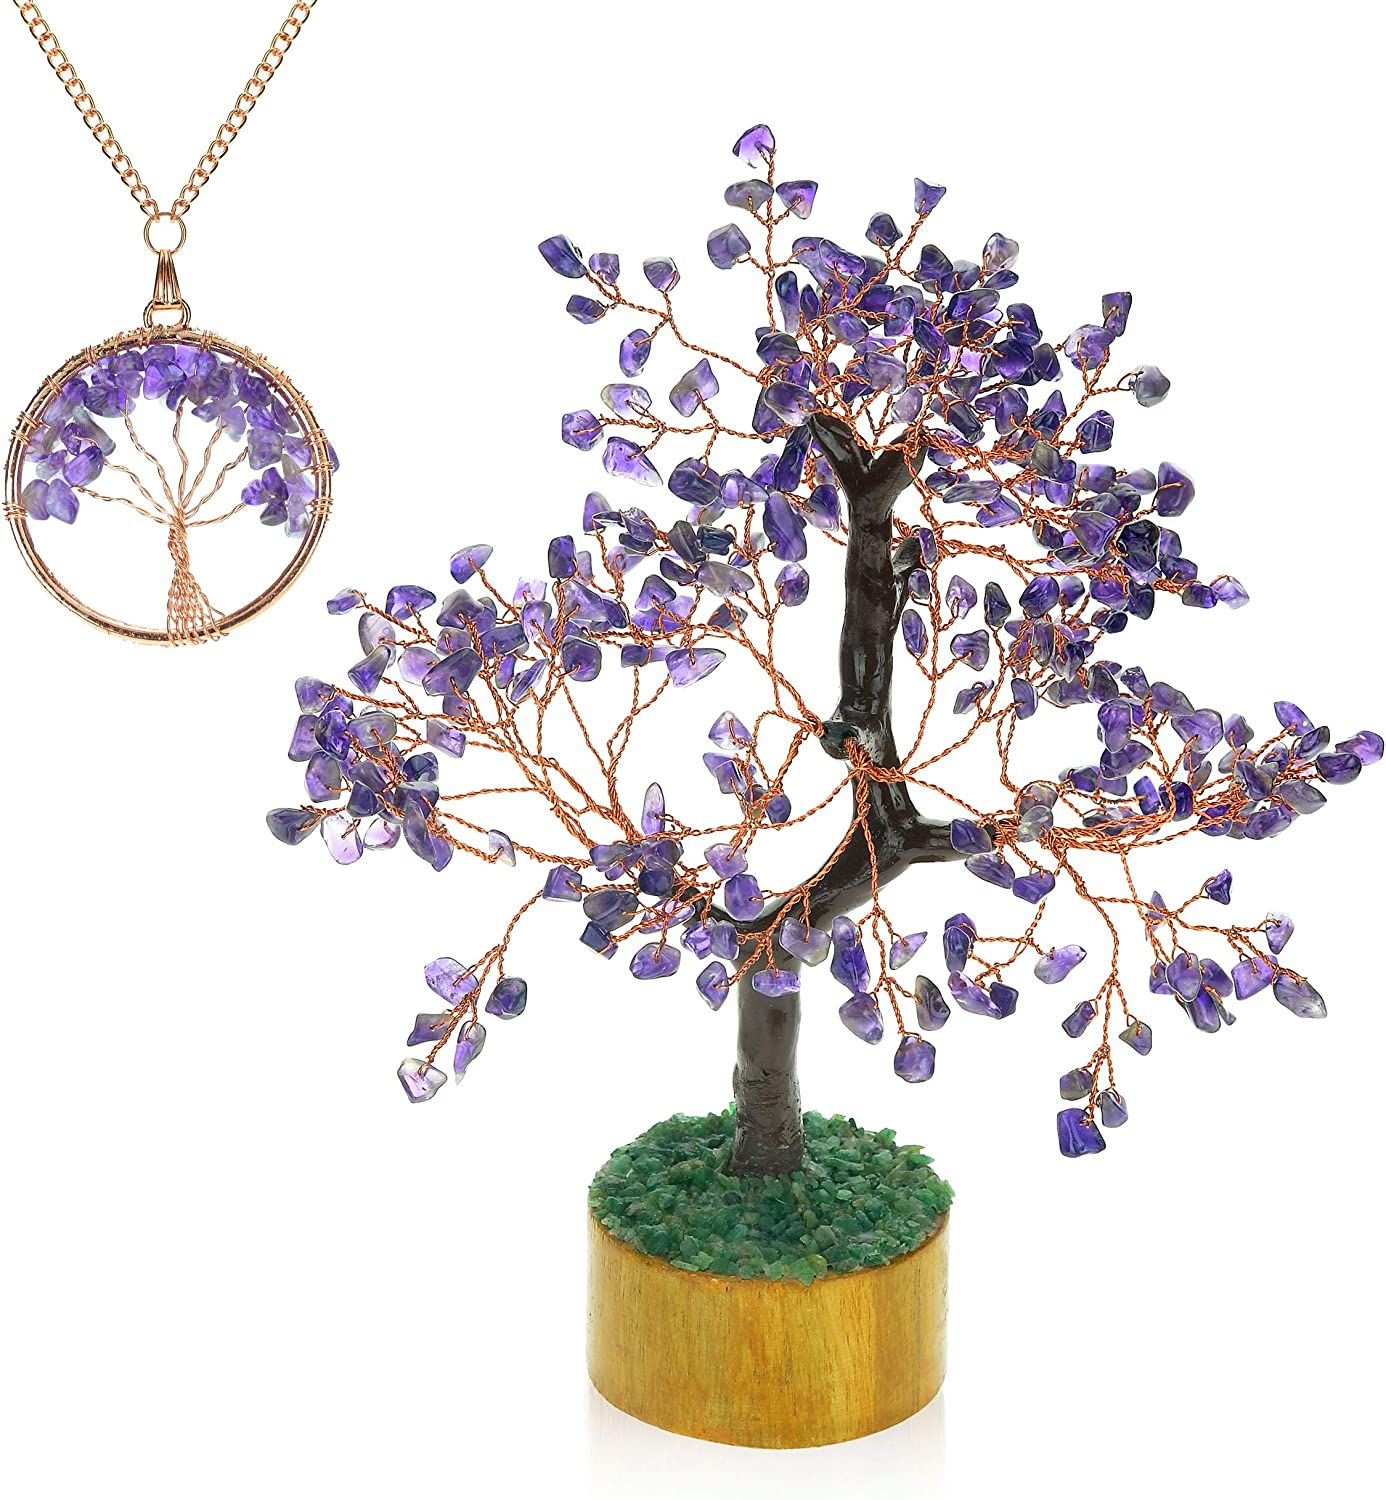 Ever Vibes Amethyst Chakra Gemstone Money Tree of Life [with Bonus Necklace] | Feng Shui Healing Crystal Chinese Oriental Home Décor Tree Figurine | Handmade Gift for Good Luck, Fortune, Wealth